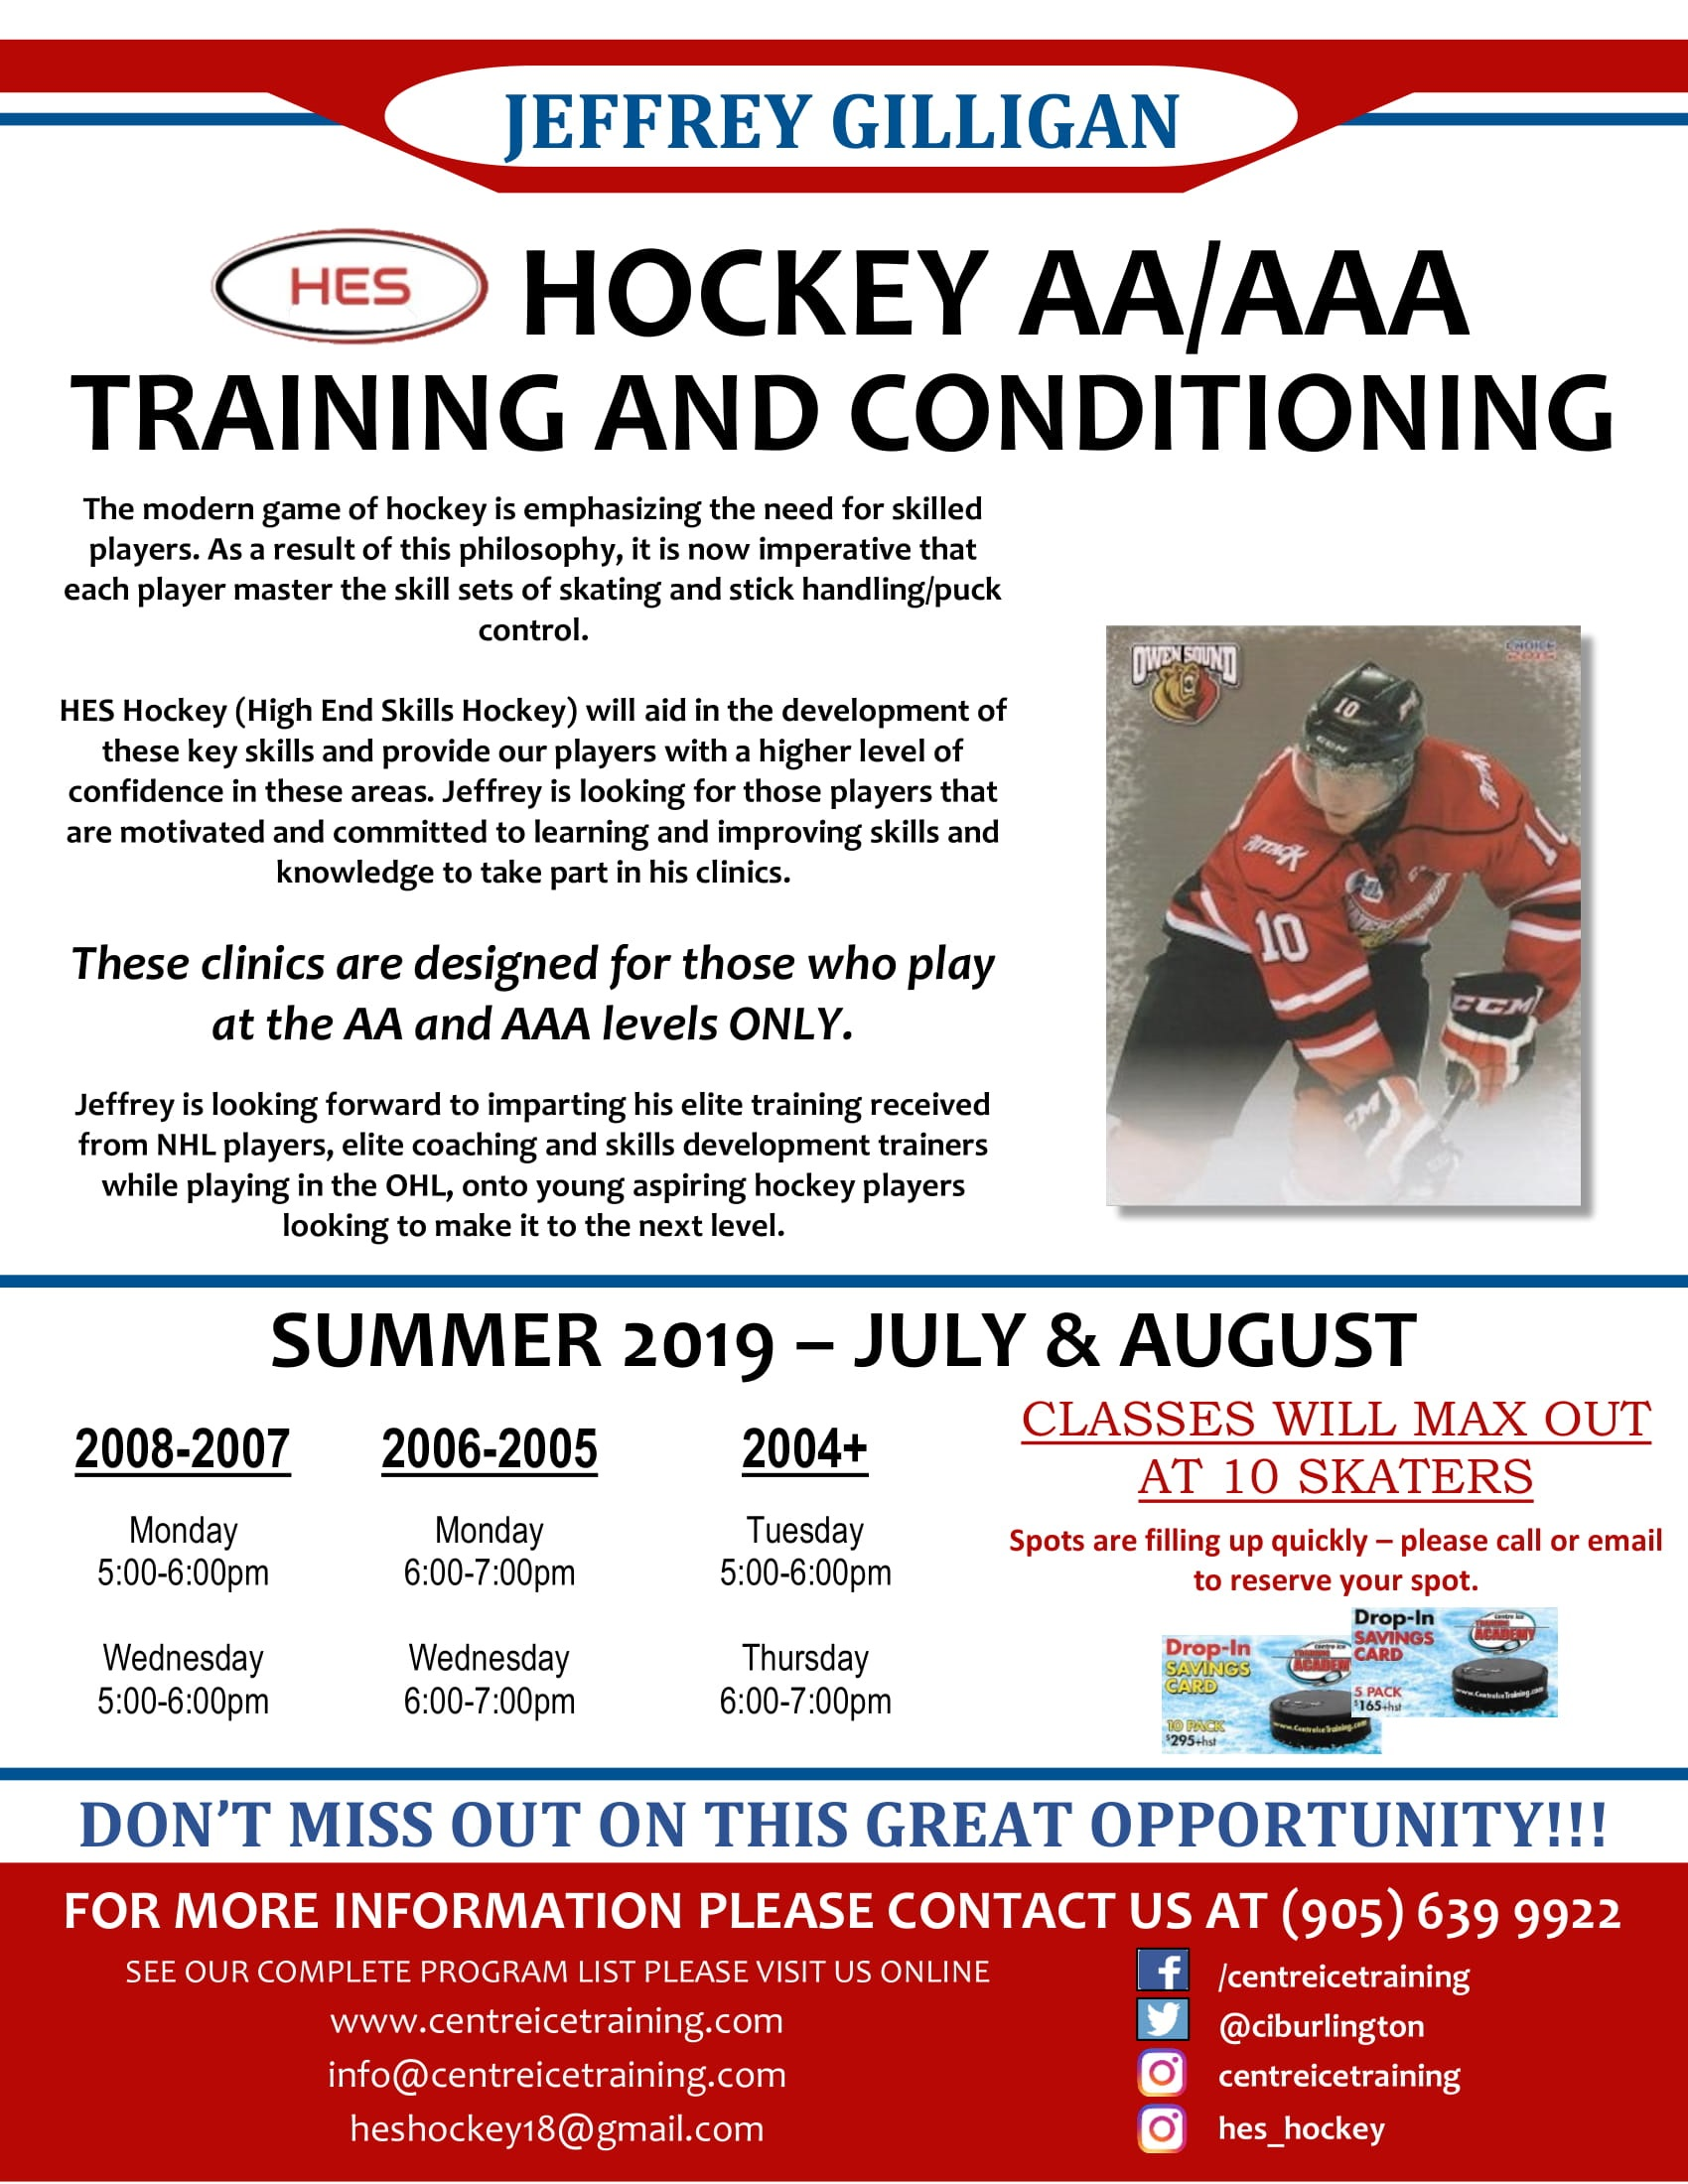 HES Hockey AA AAA Training - Summer 2019